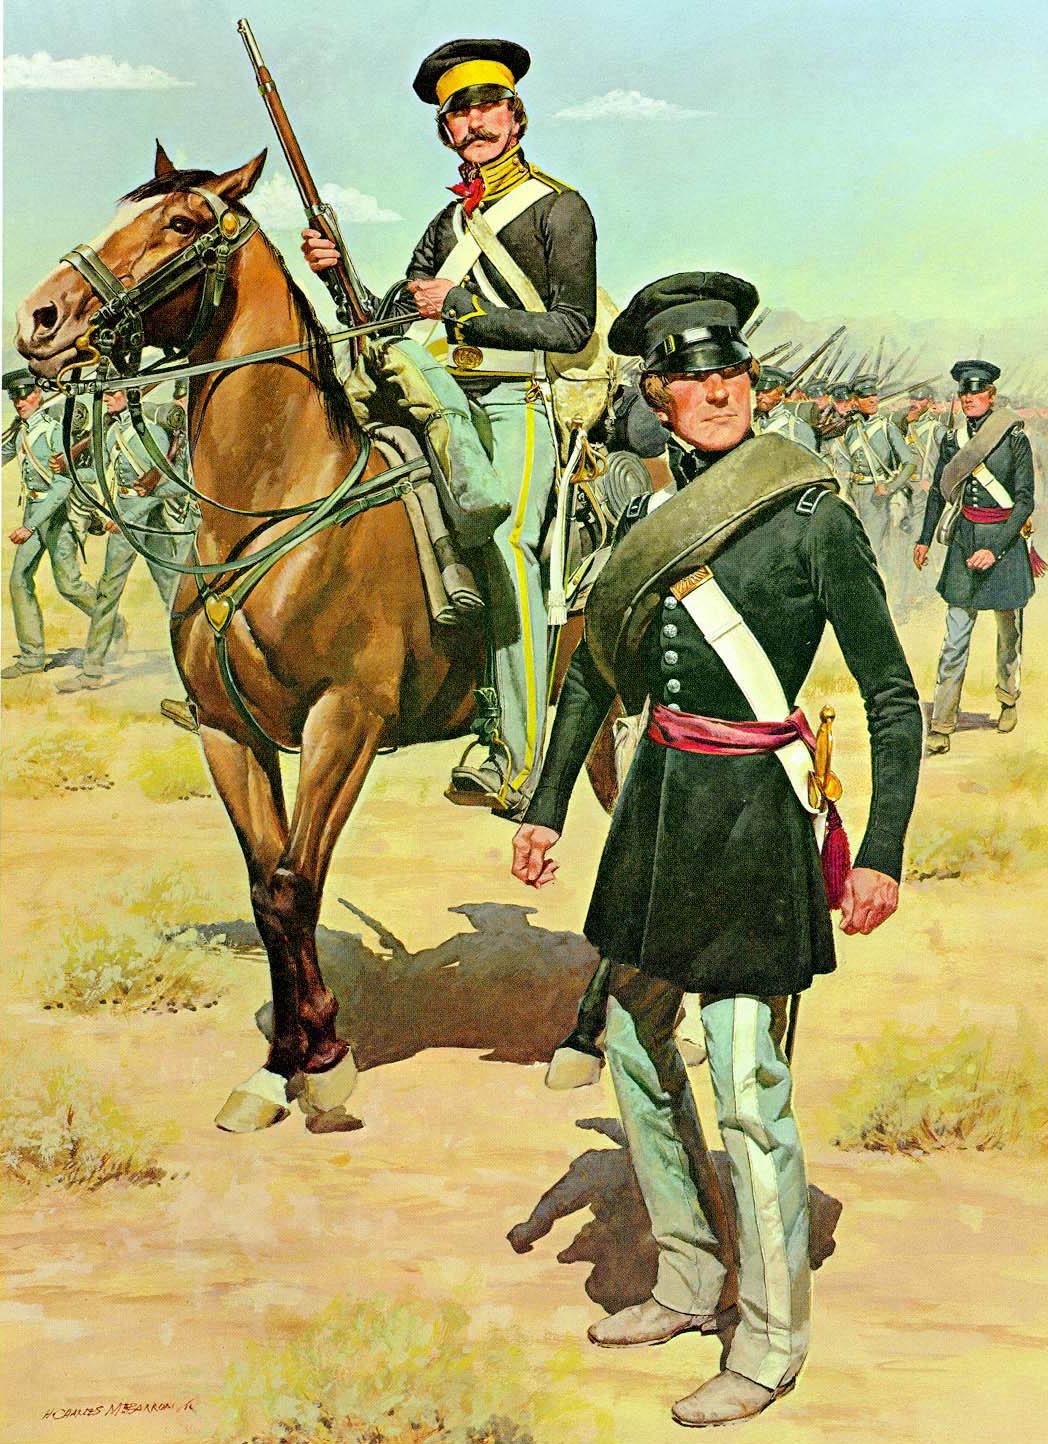 A painting of the U.S. Cavalry and infantry in the 1840s during the Mexican-American War. Artist: H. Charles McBarron, Jr